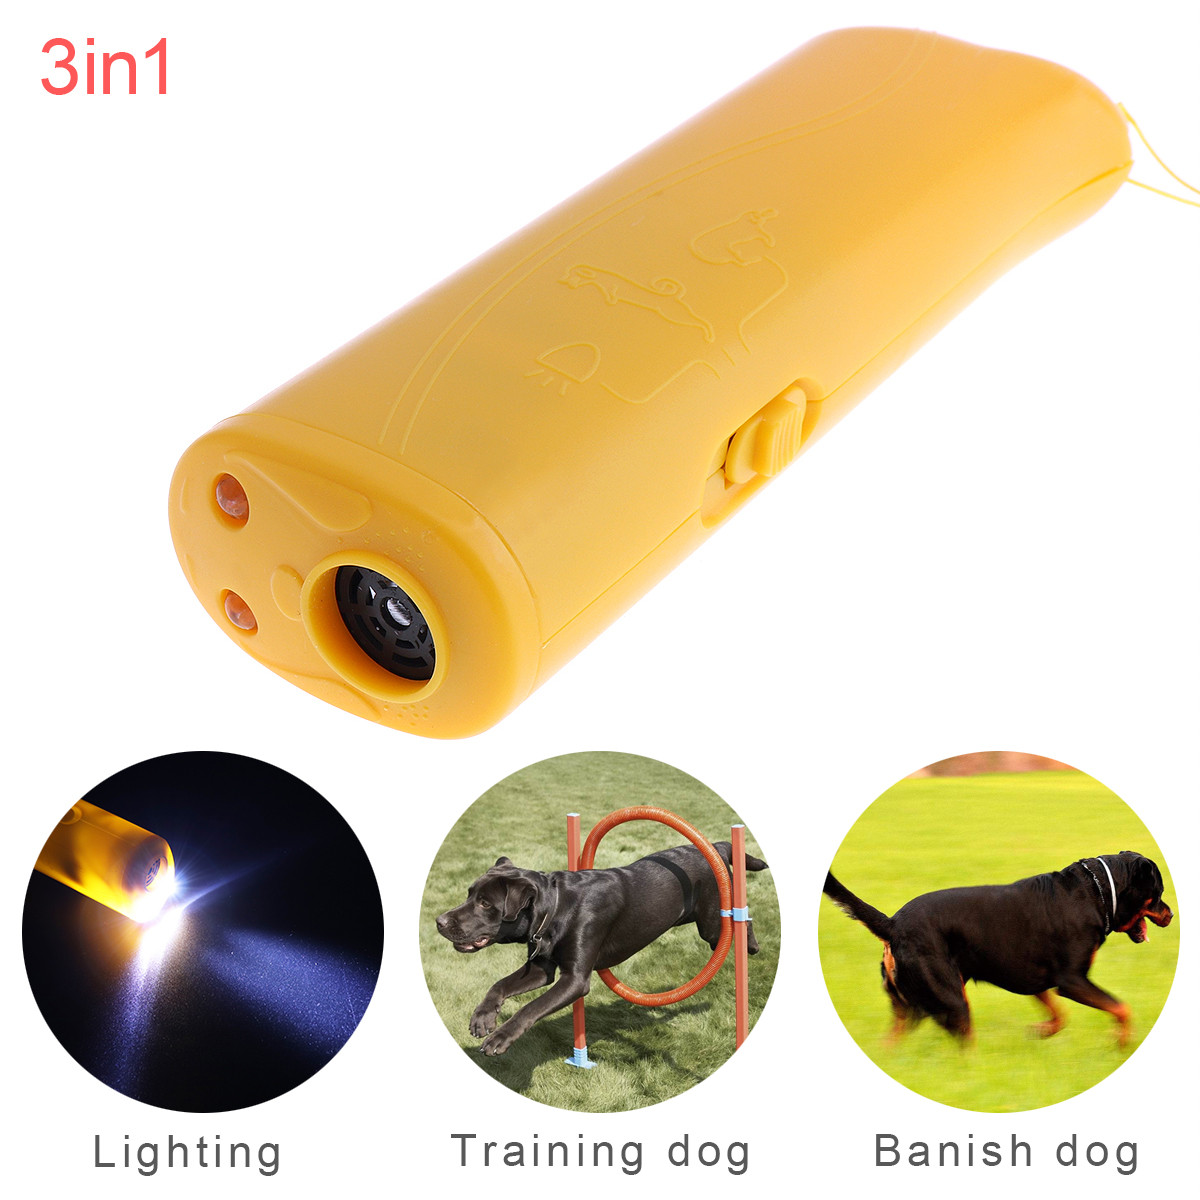 Ultrasonic LED Dog Repeller Trainer Pet Dog Rumbling Equipment Flashlight Torch With 3 Modes For Training Drive Dog Flash Light